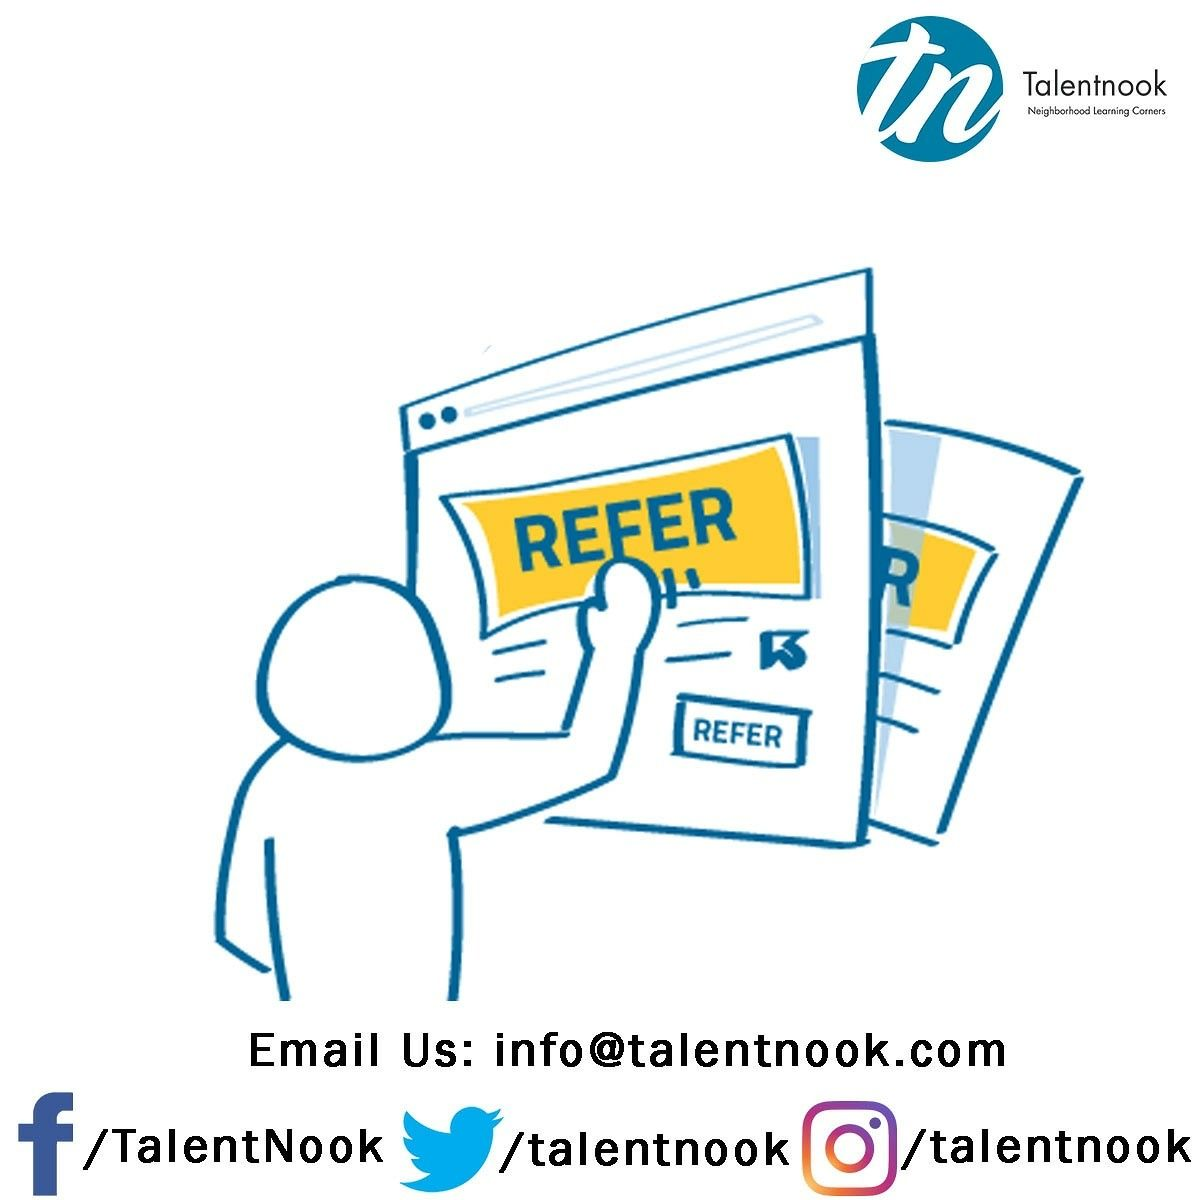 Referral Program Extended By Talentnook An Exciting